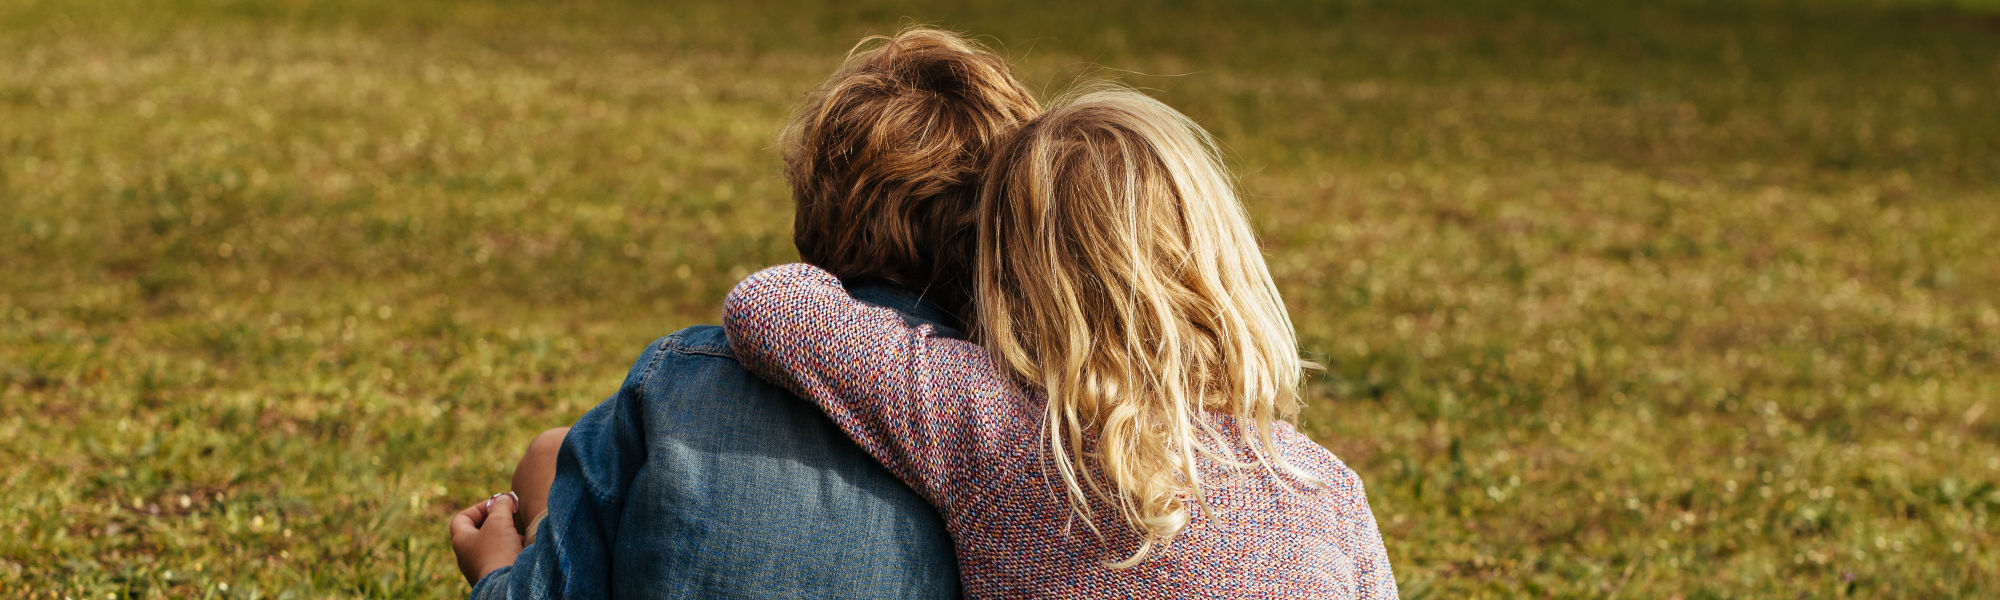 Divorce Factors to Consider: What's In My Child's Best Interest?